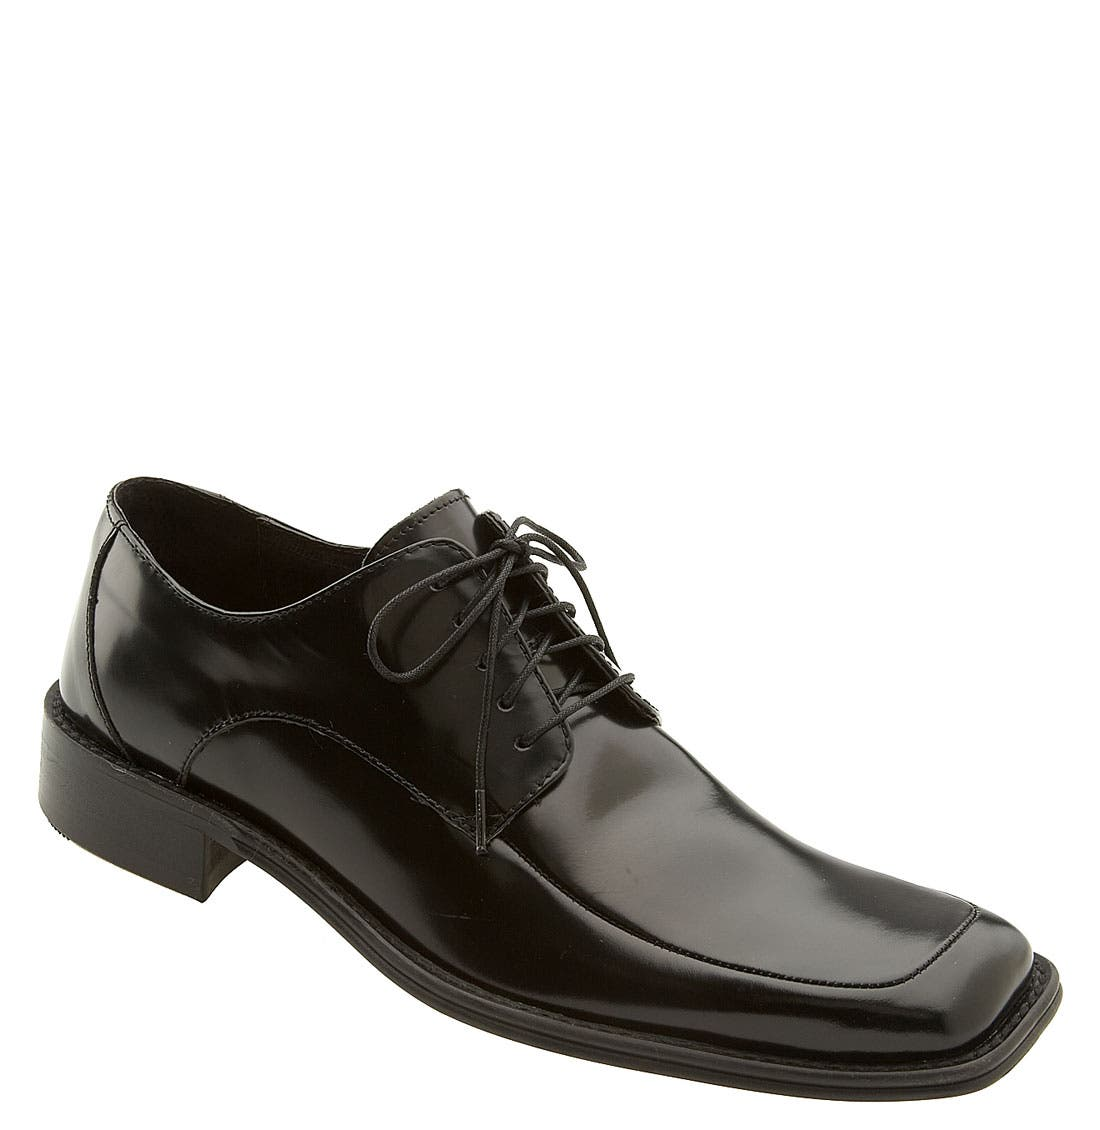 Alternate Image 1 Selected - Kenneth Cole New York 'Town Hall' Apron Toe Oxford (Online Only)